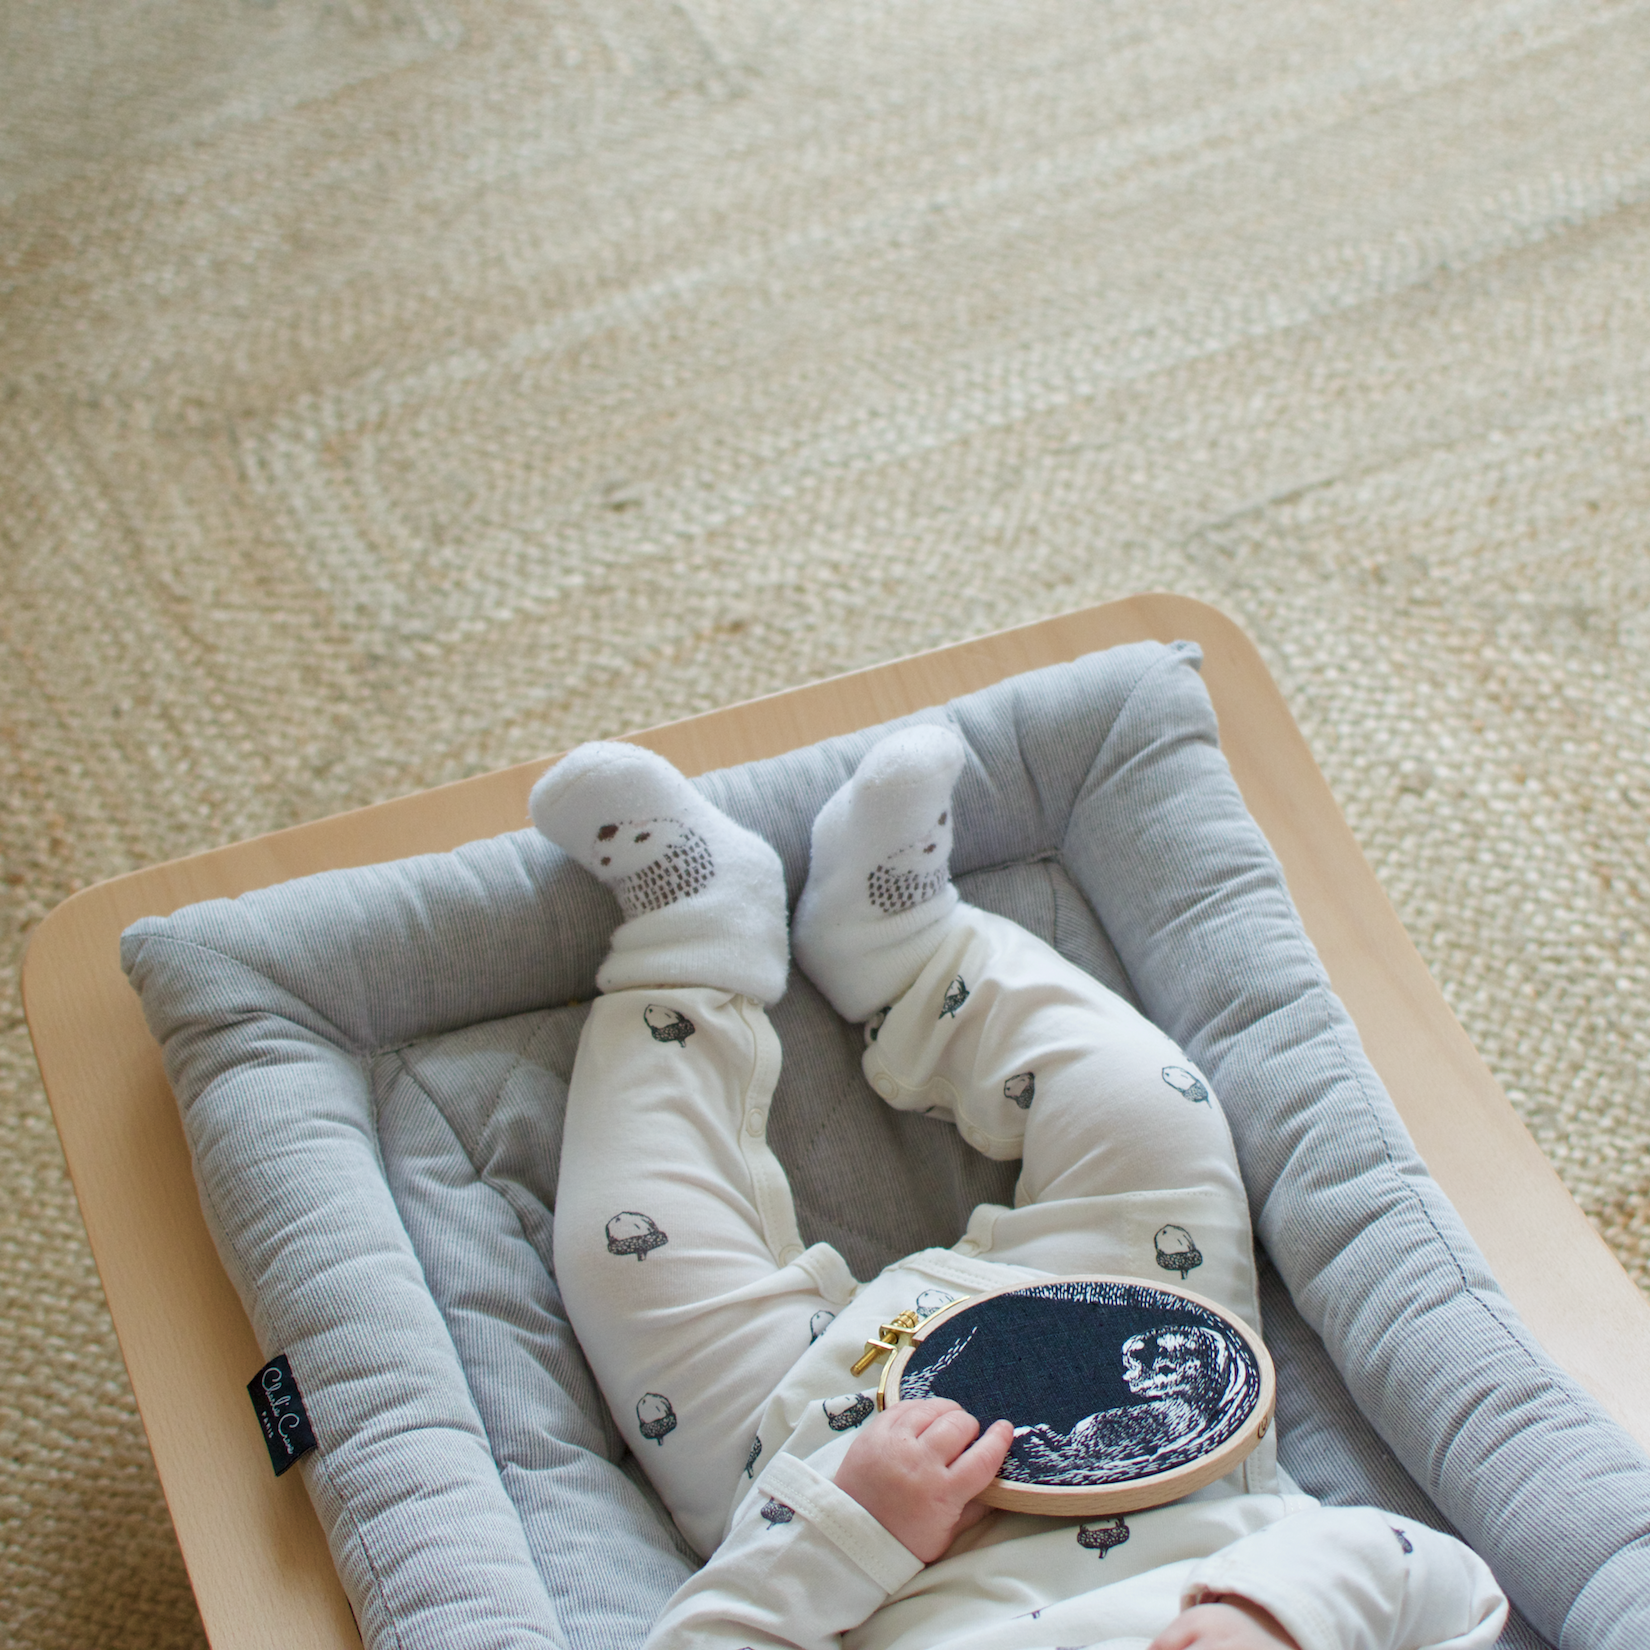 A baby holds an embroidery hoop with a sonogram embroidered on it.